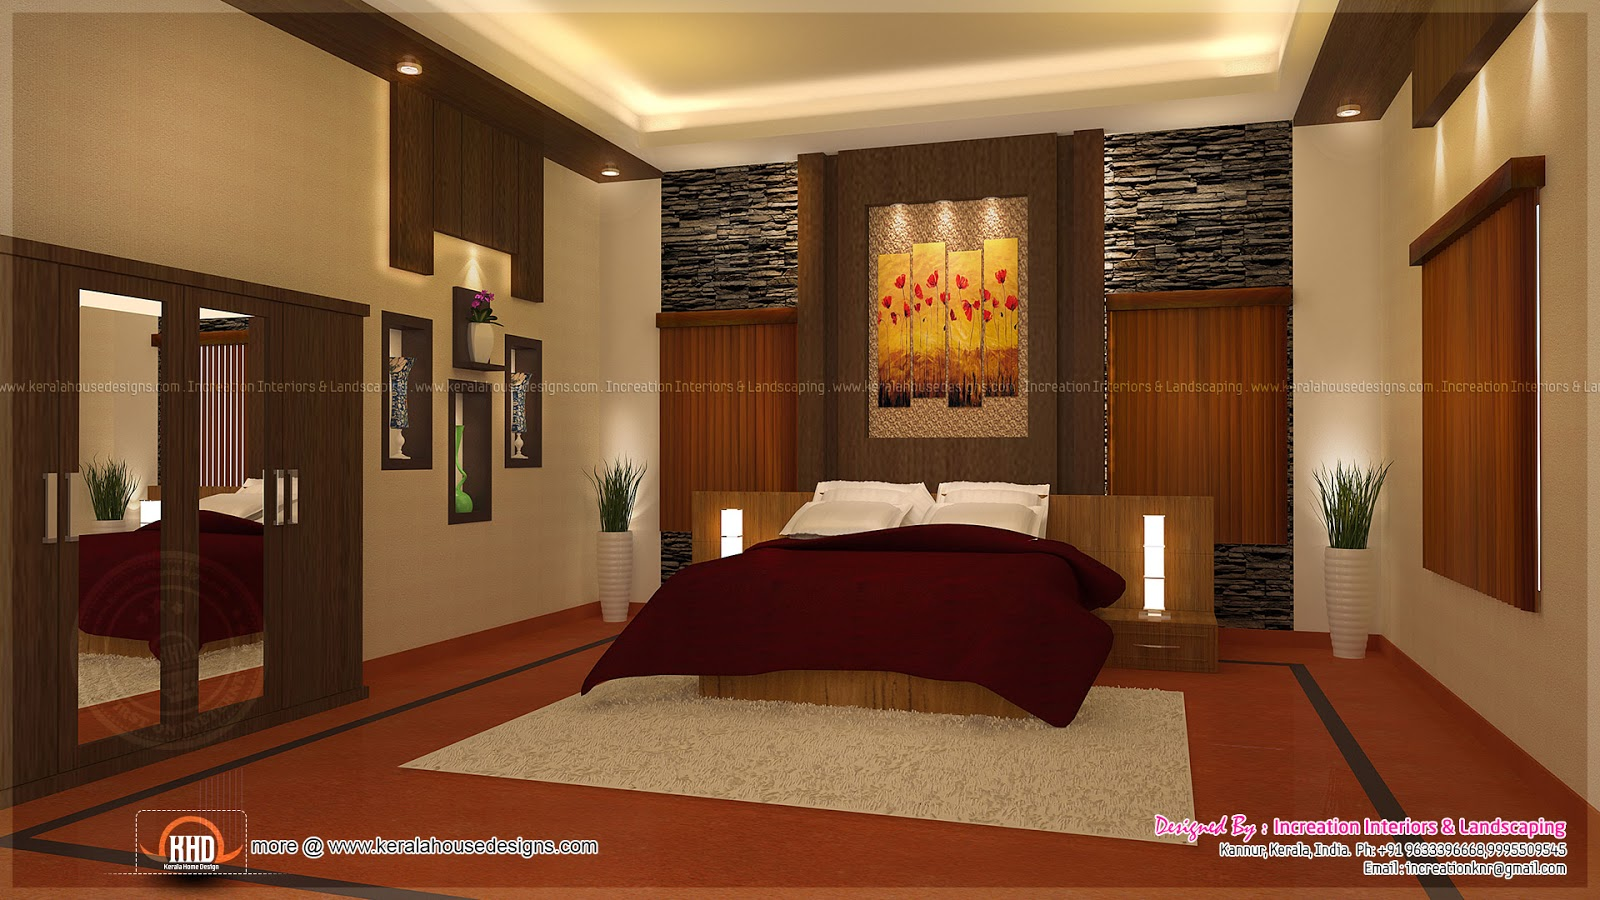 Master bedroom interior for Interior design ideas images